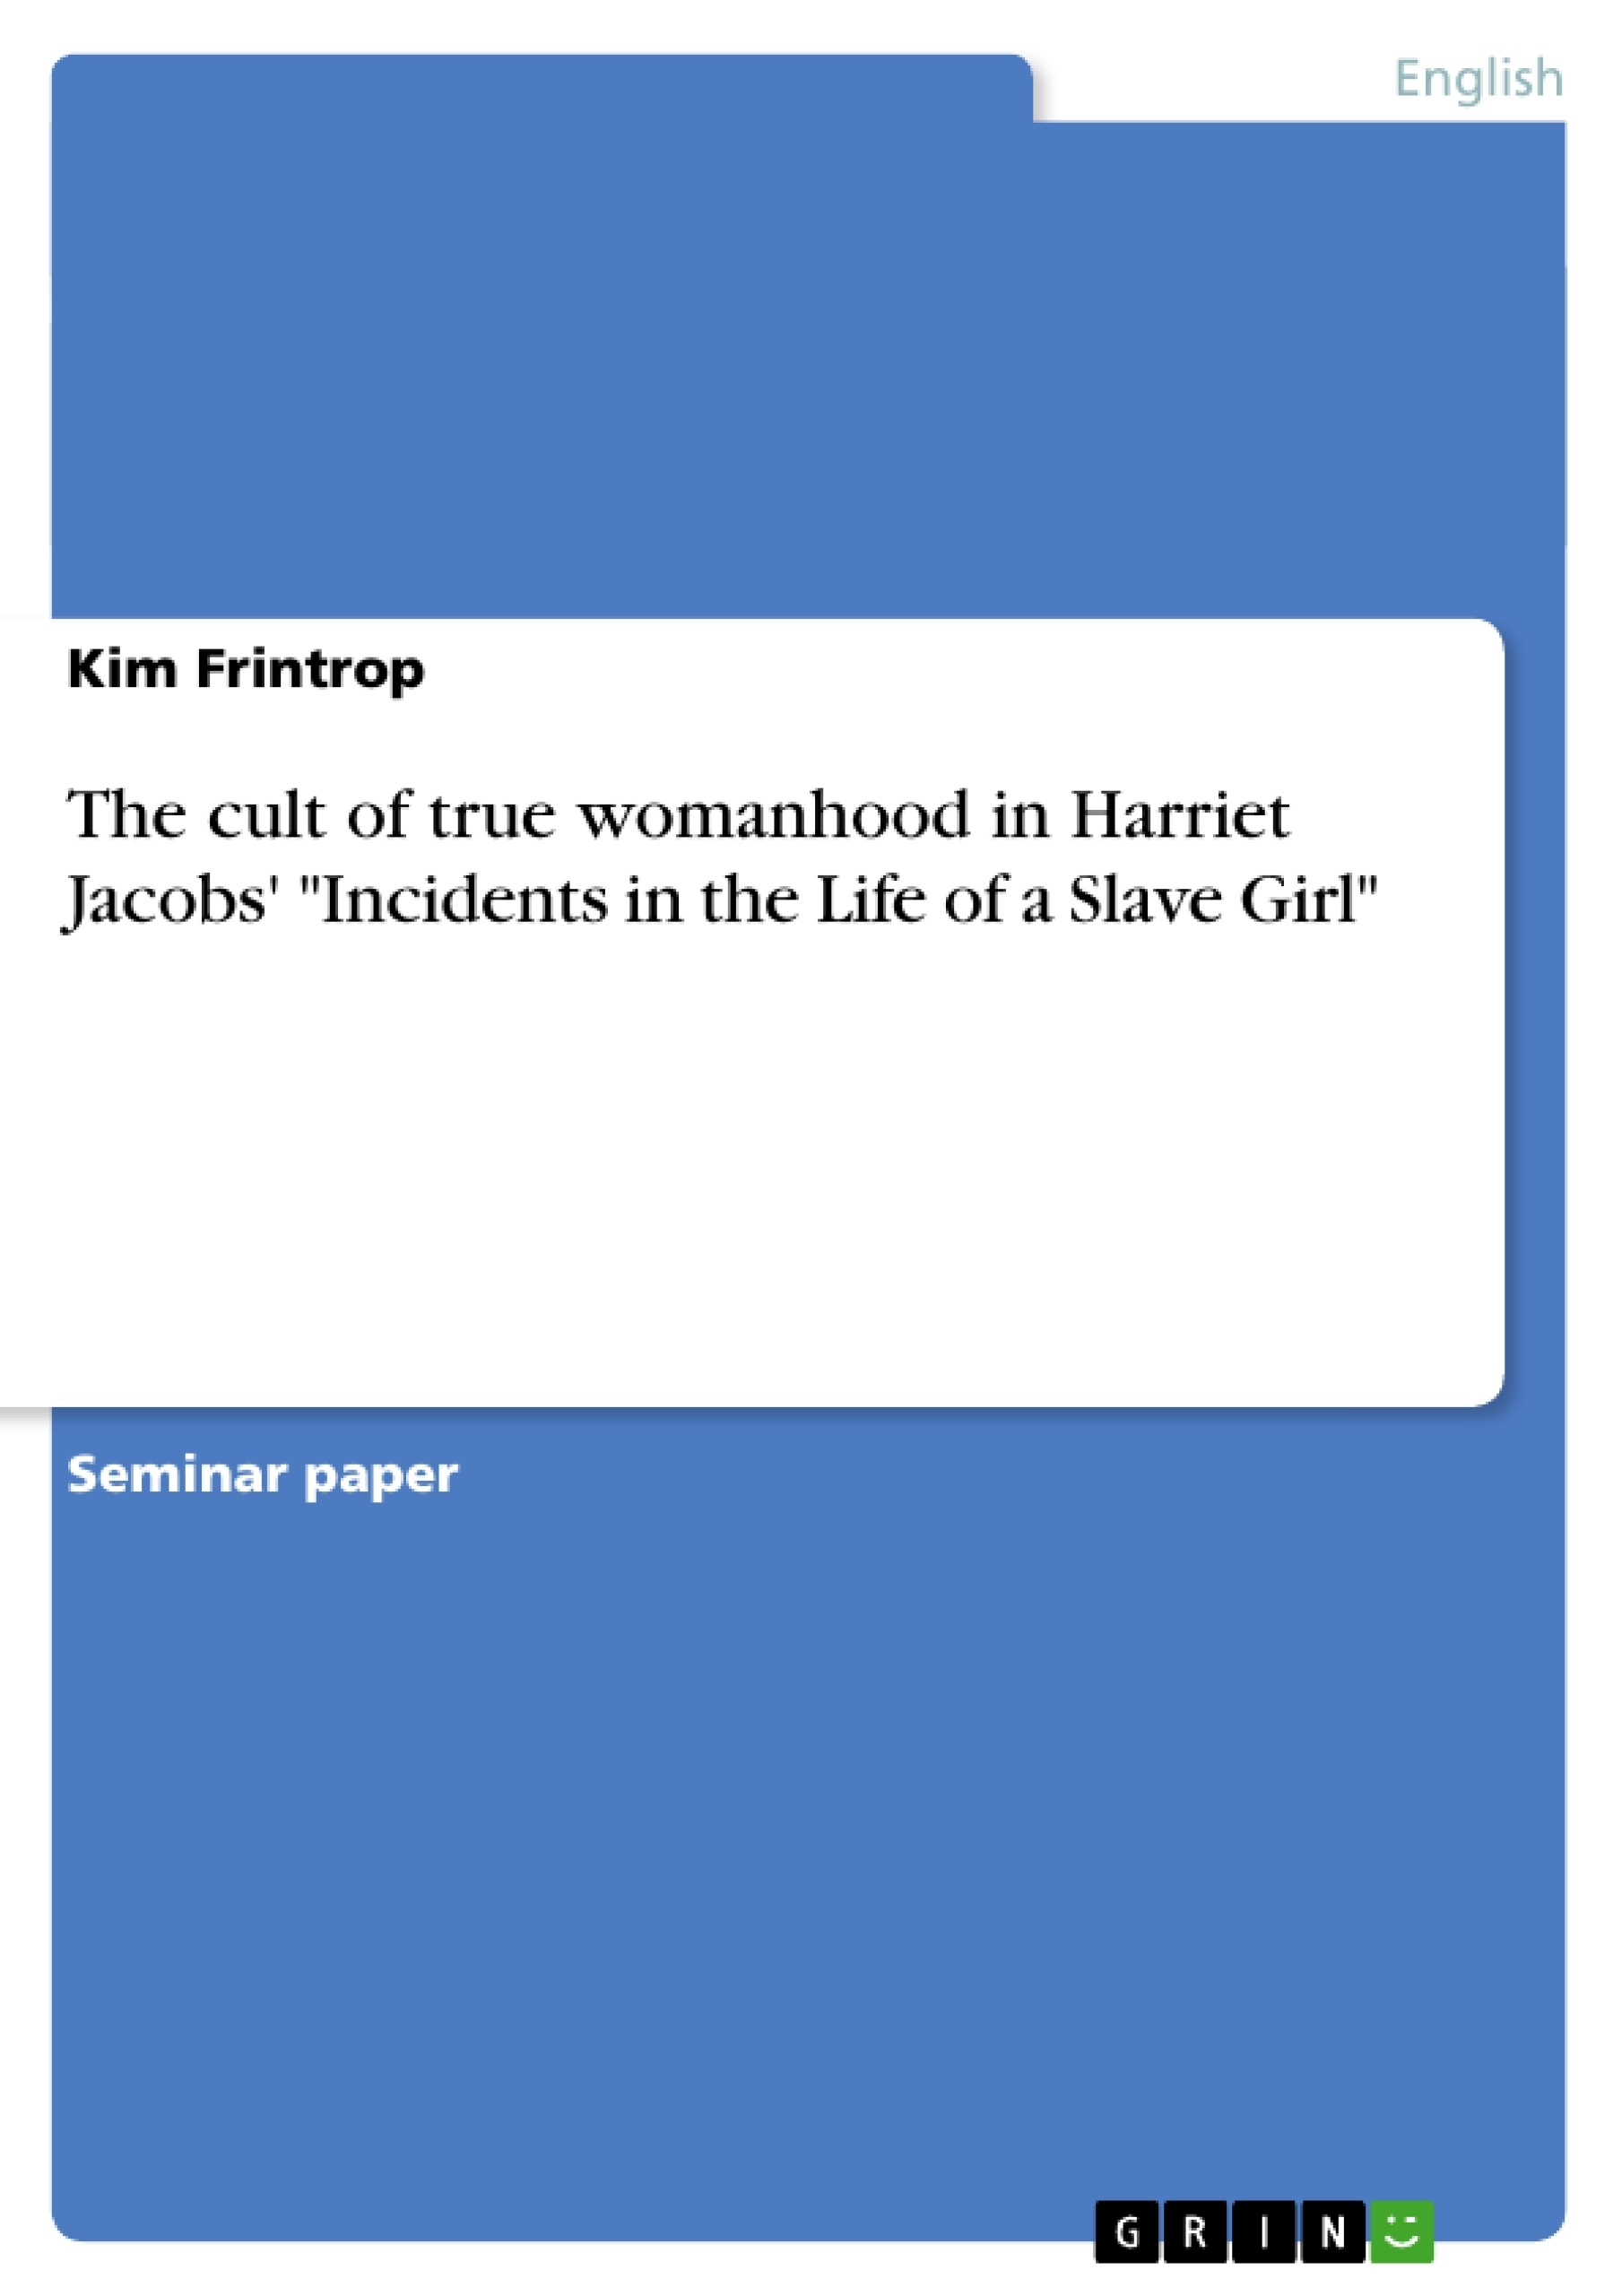 """Title: The cult of true womanhood in Harriet Jacobs' """"Incidents in the Life of a Slave Girl"""""""